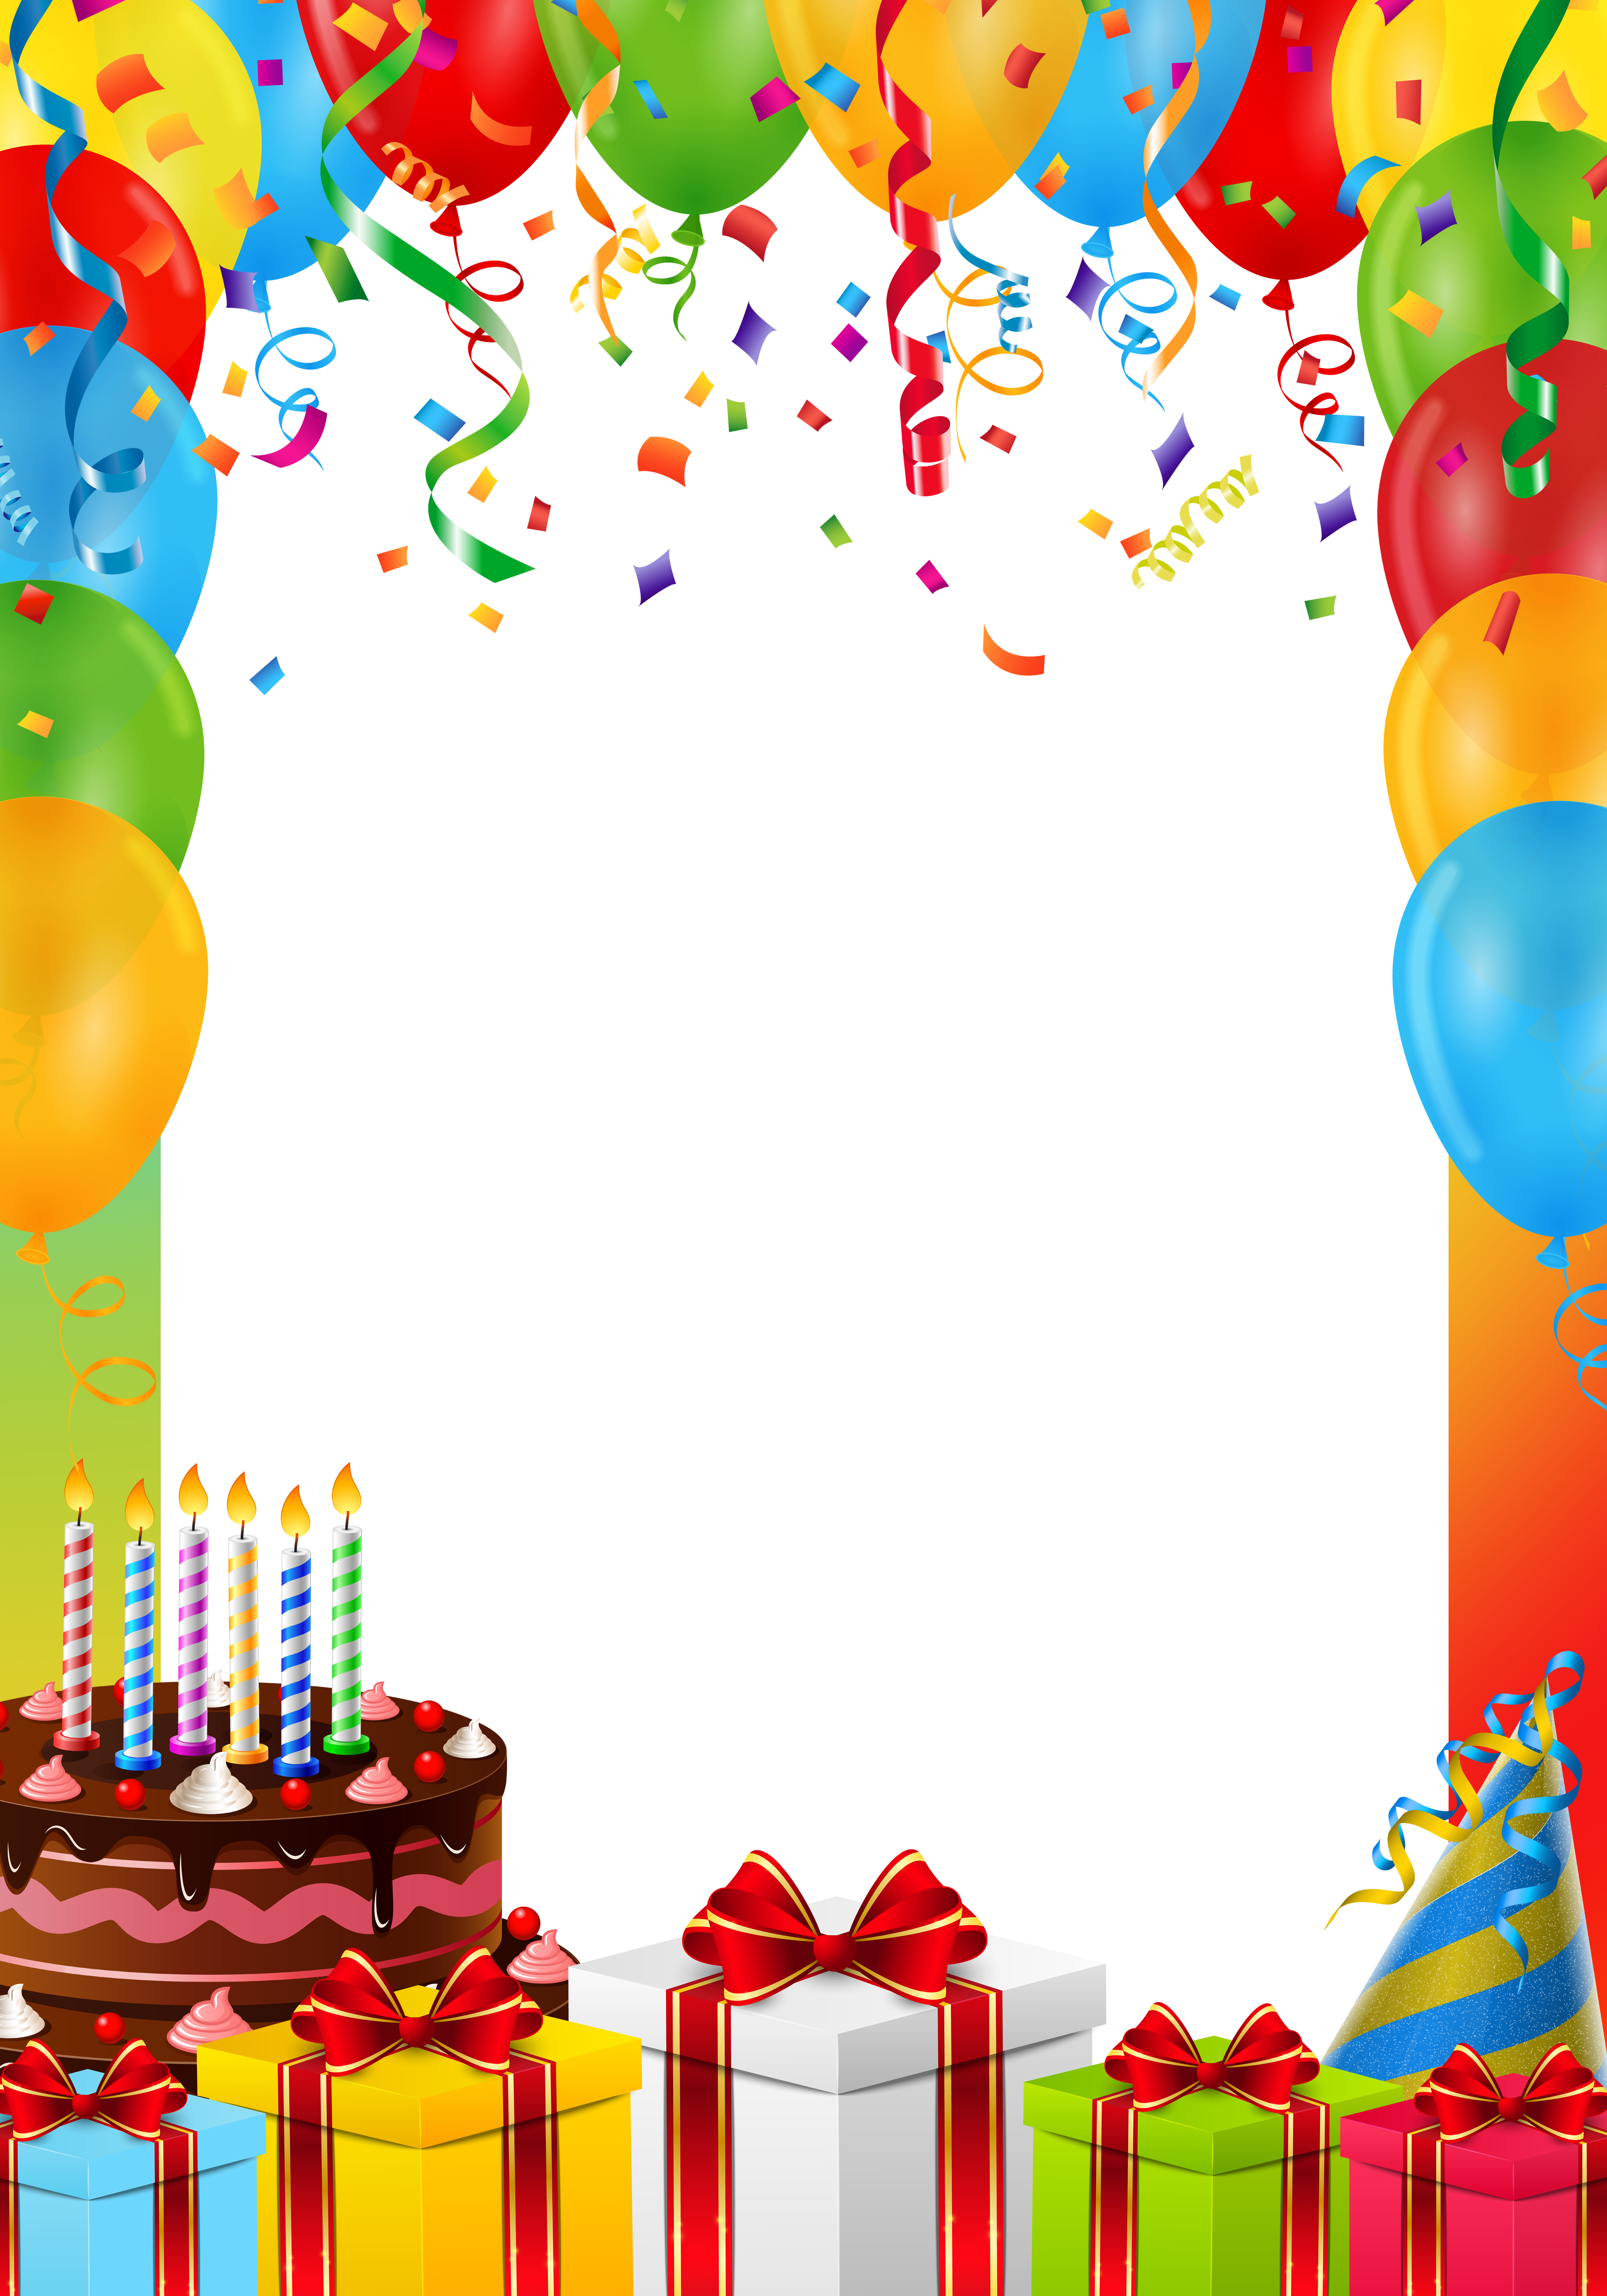 Birthday picture frame clipart freeuse download Birthday Frame PNG Transparent Image | Gallery Yopriceville - High ... freeuse download